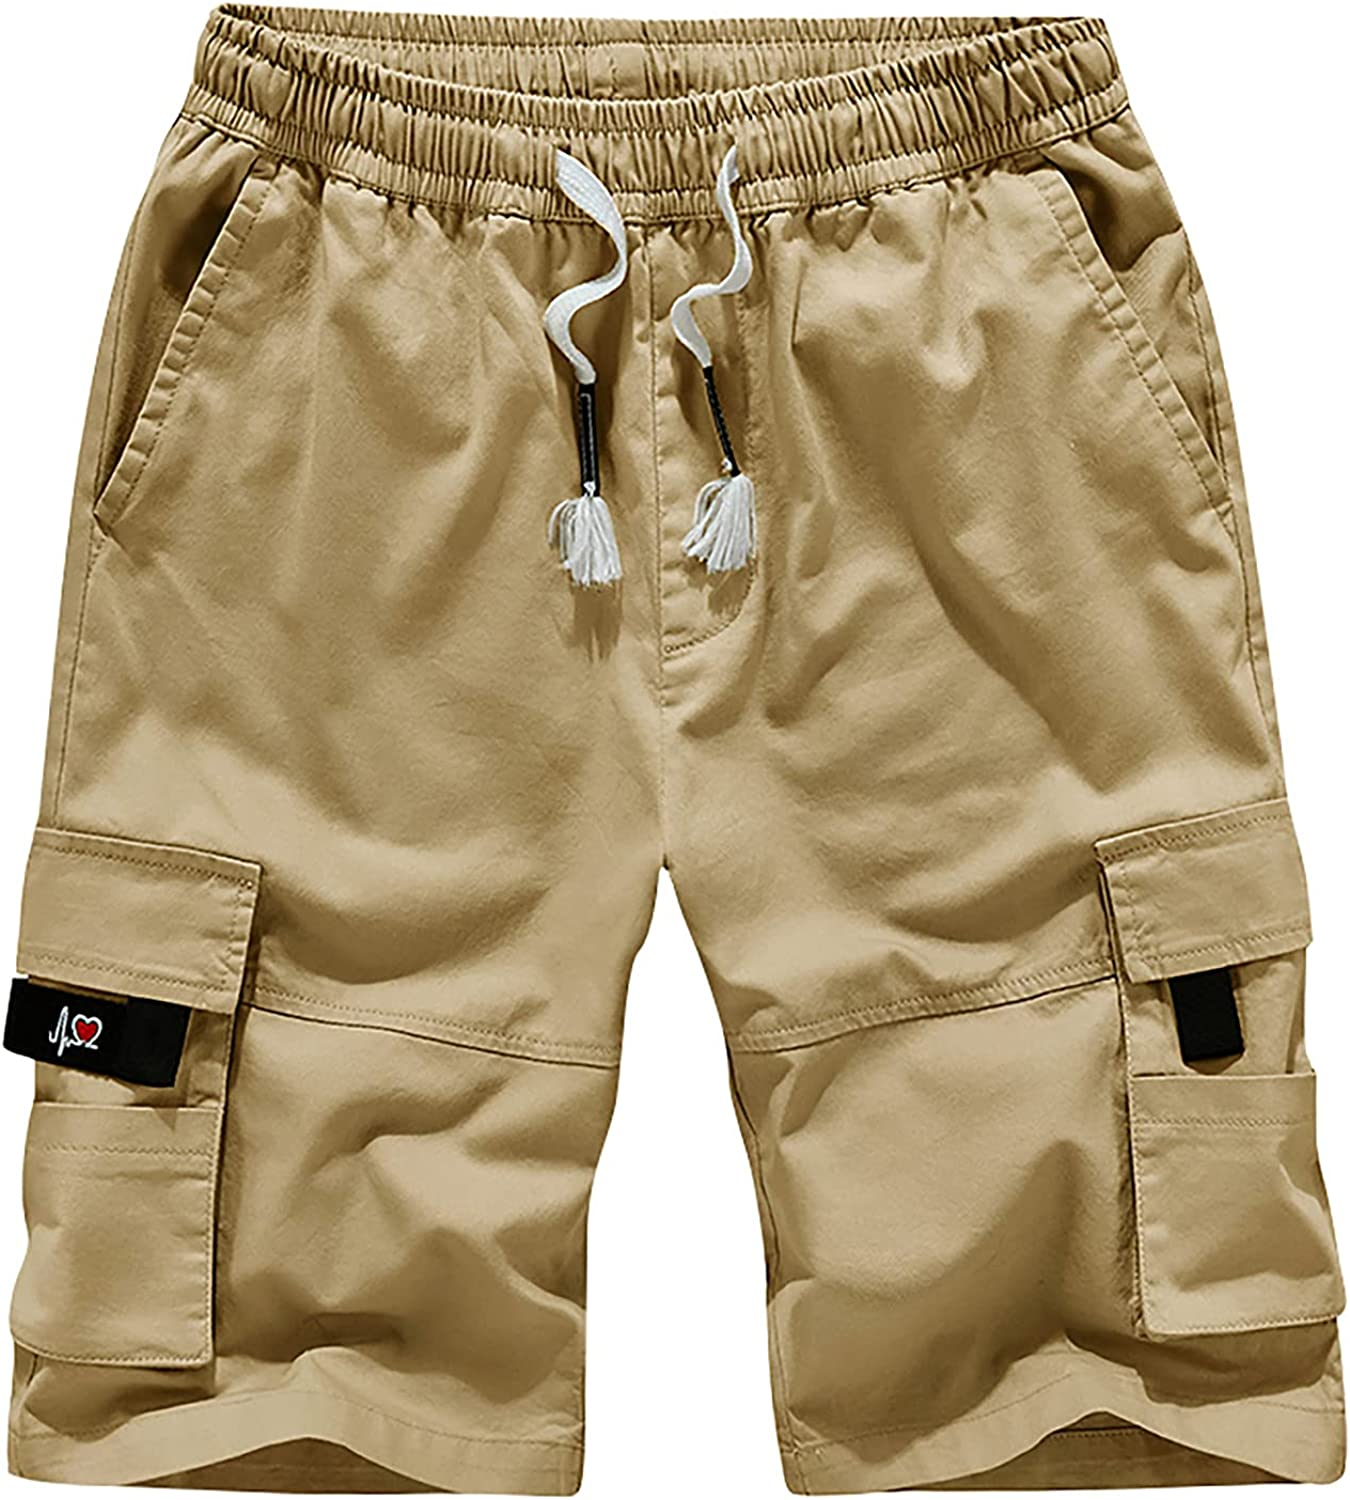 Men's Five-Point Shorts Drawstring Overalls Pants Cotton Running Shorts Casual Breathable Outdoor Pants Cargo Shorts